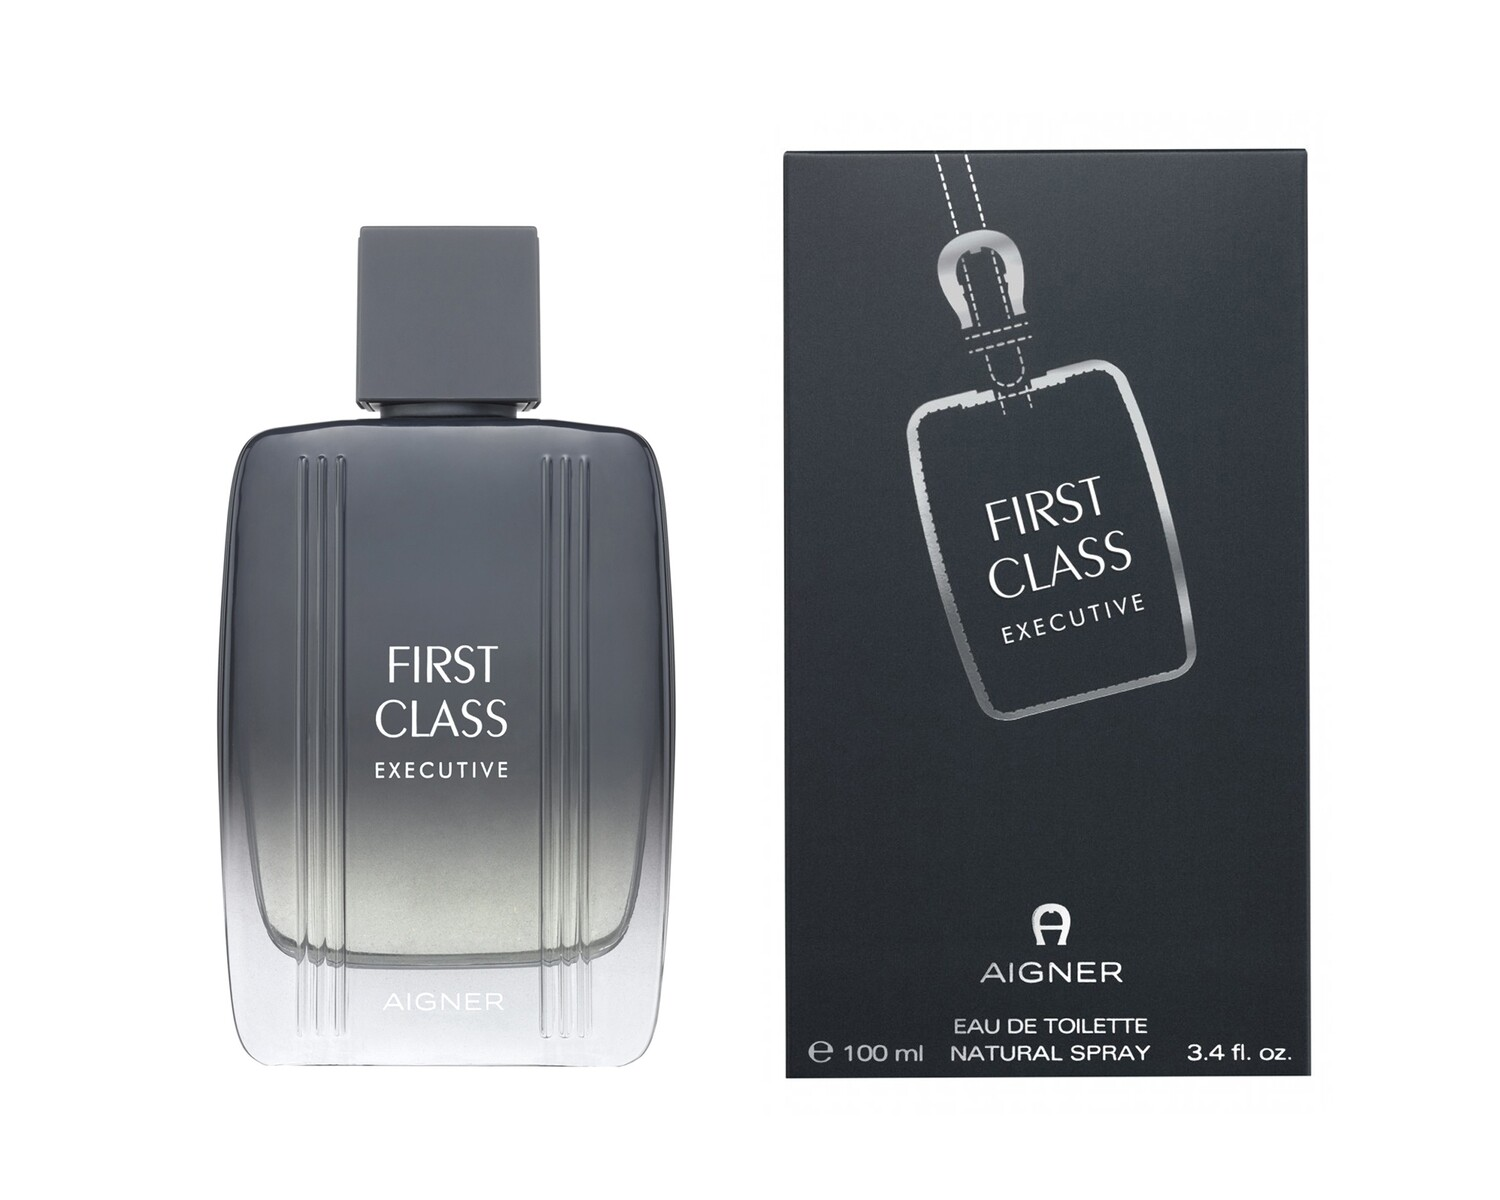 Aigner First Class Executive Eau de Toilette 100ml